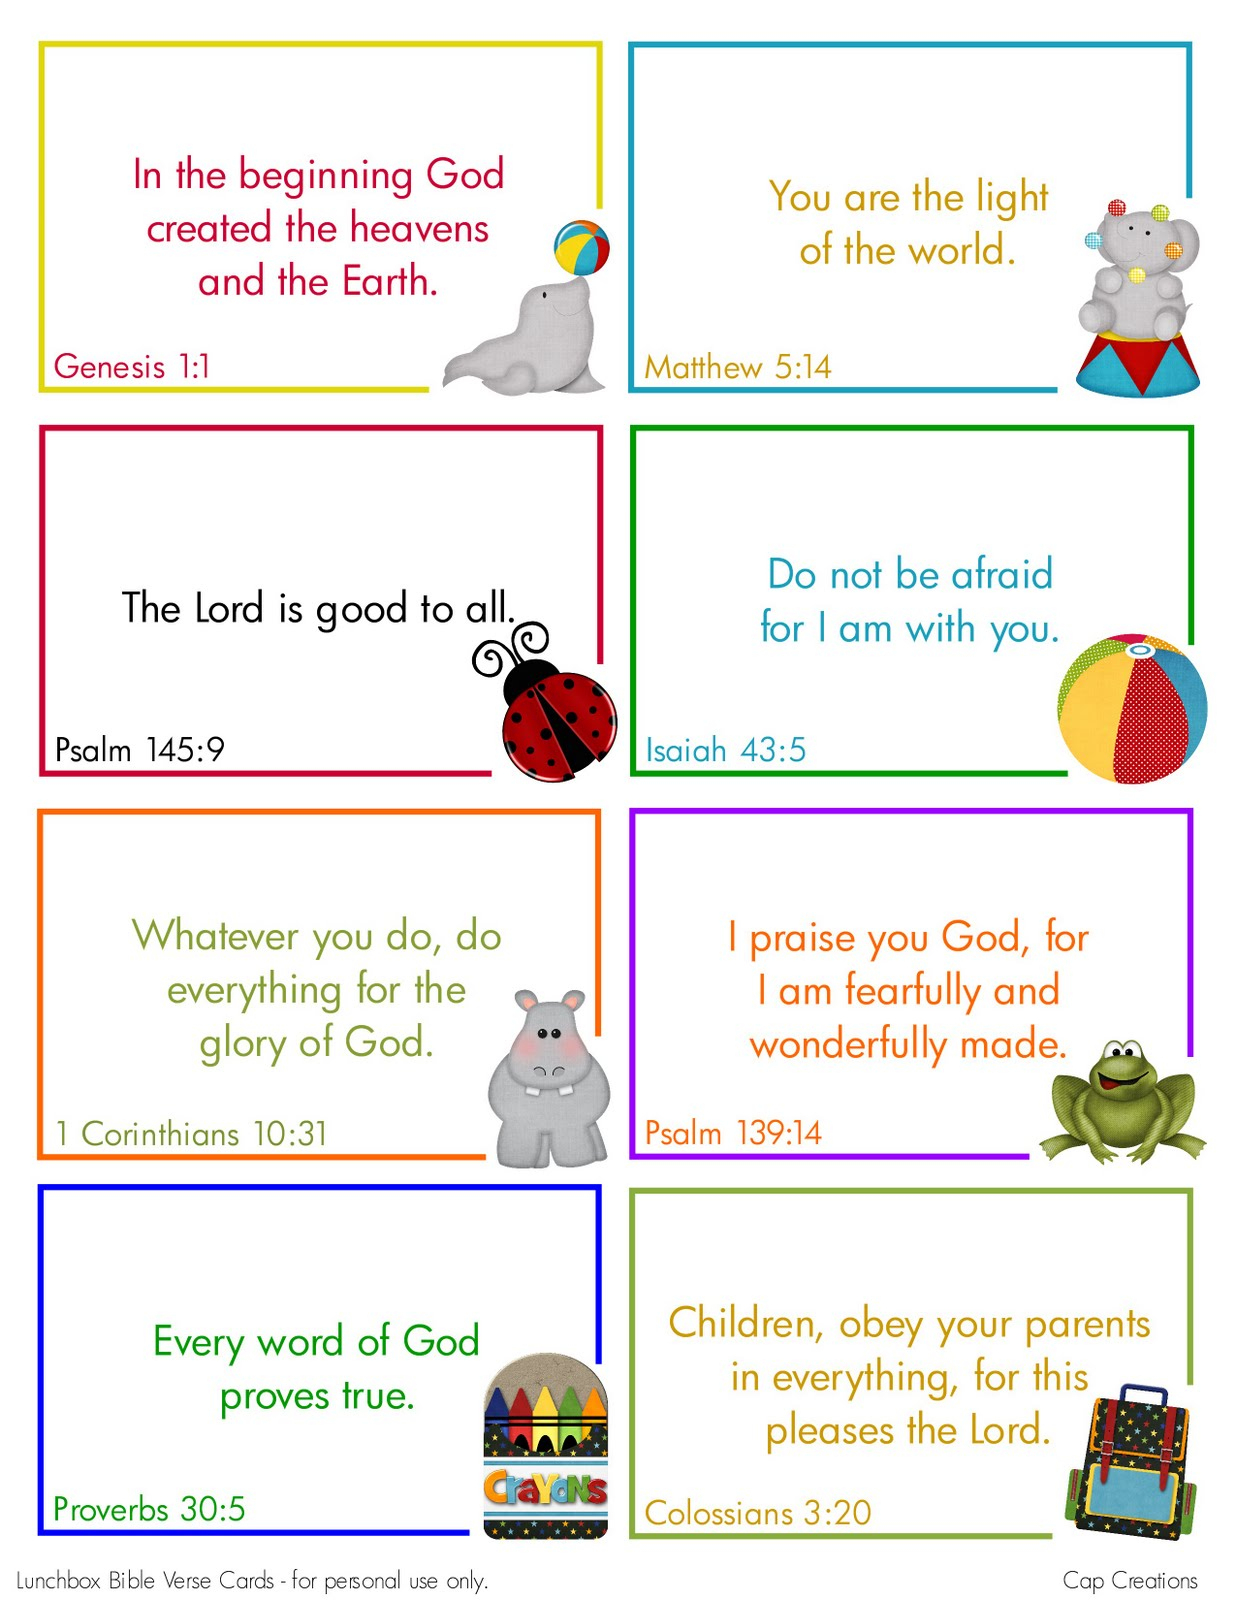 Cap Creations: Free Printable Lunchbox Bible Verse Cards - Free Printable Bible Verses For Children